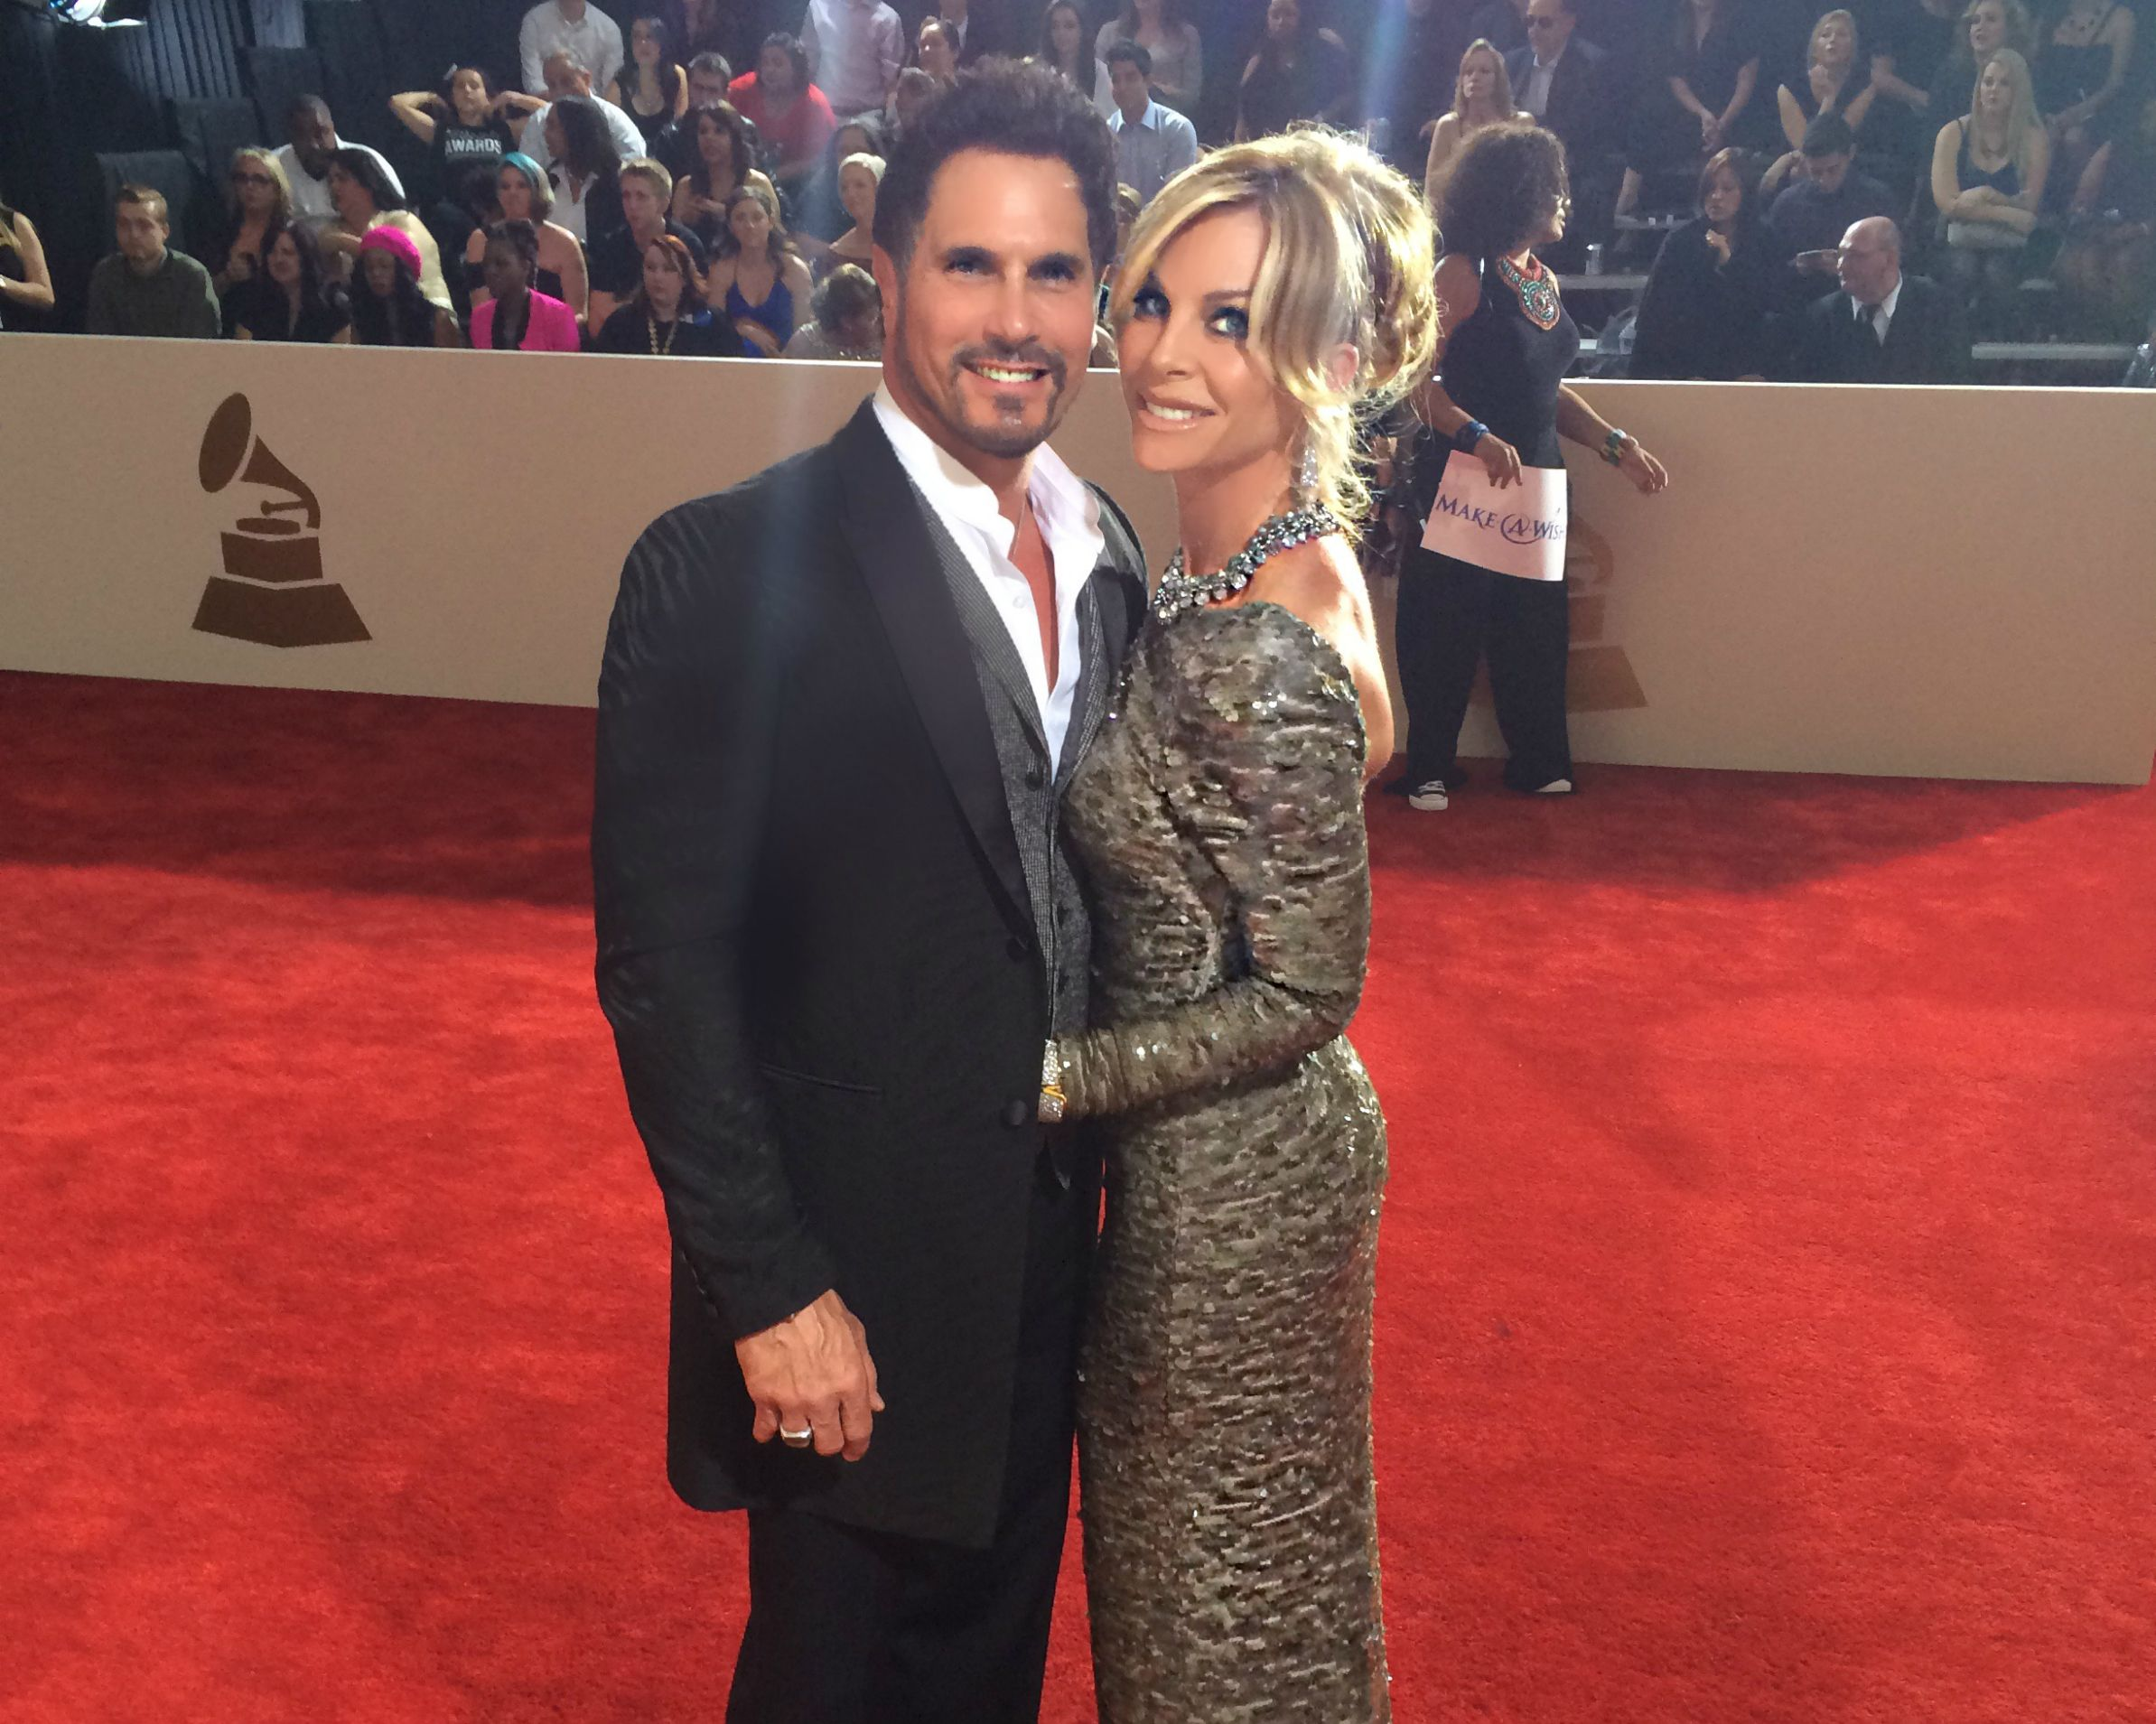 Cindy Ambuehl Nude Simple 57th annual grammy awards – winners and show wrap up. | 57th